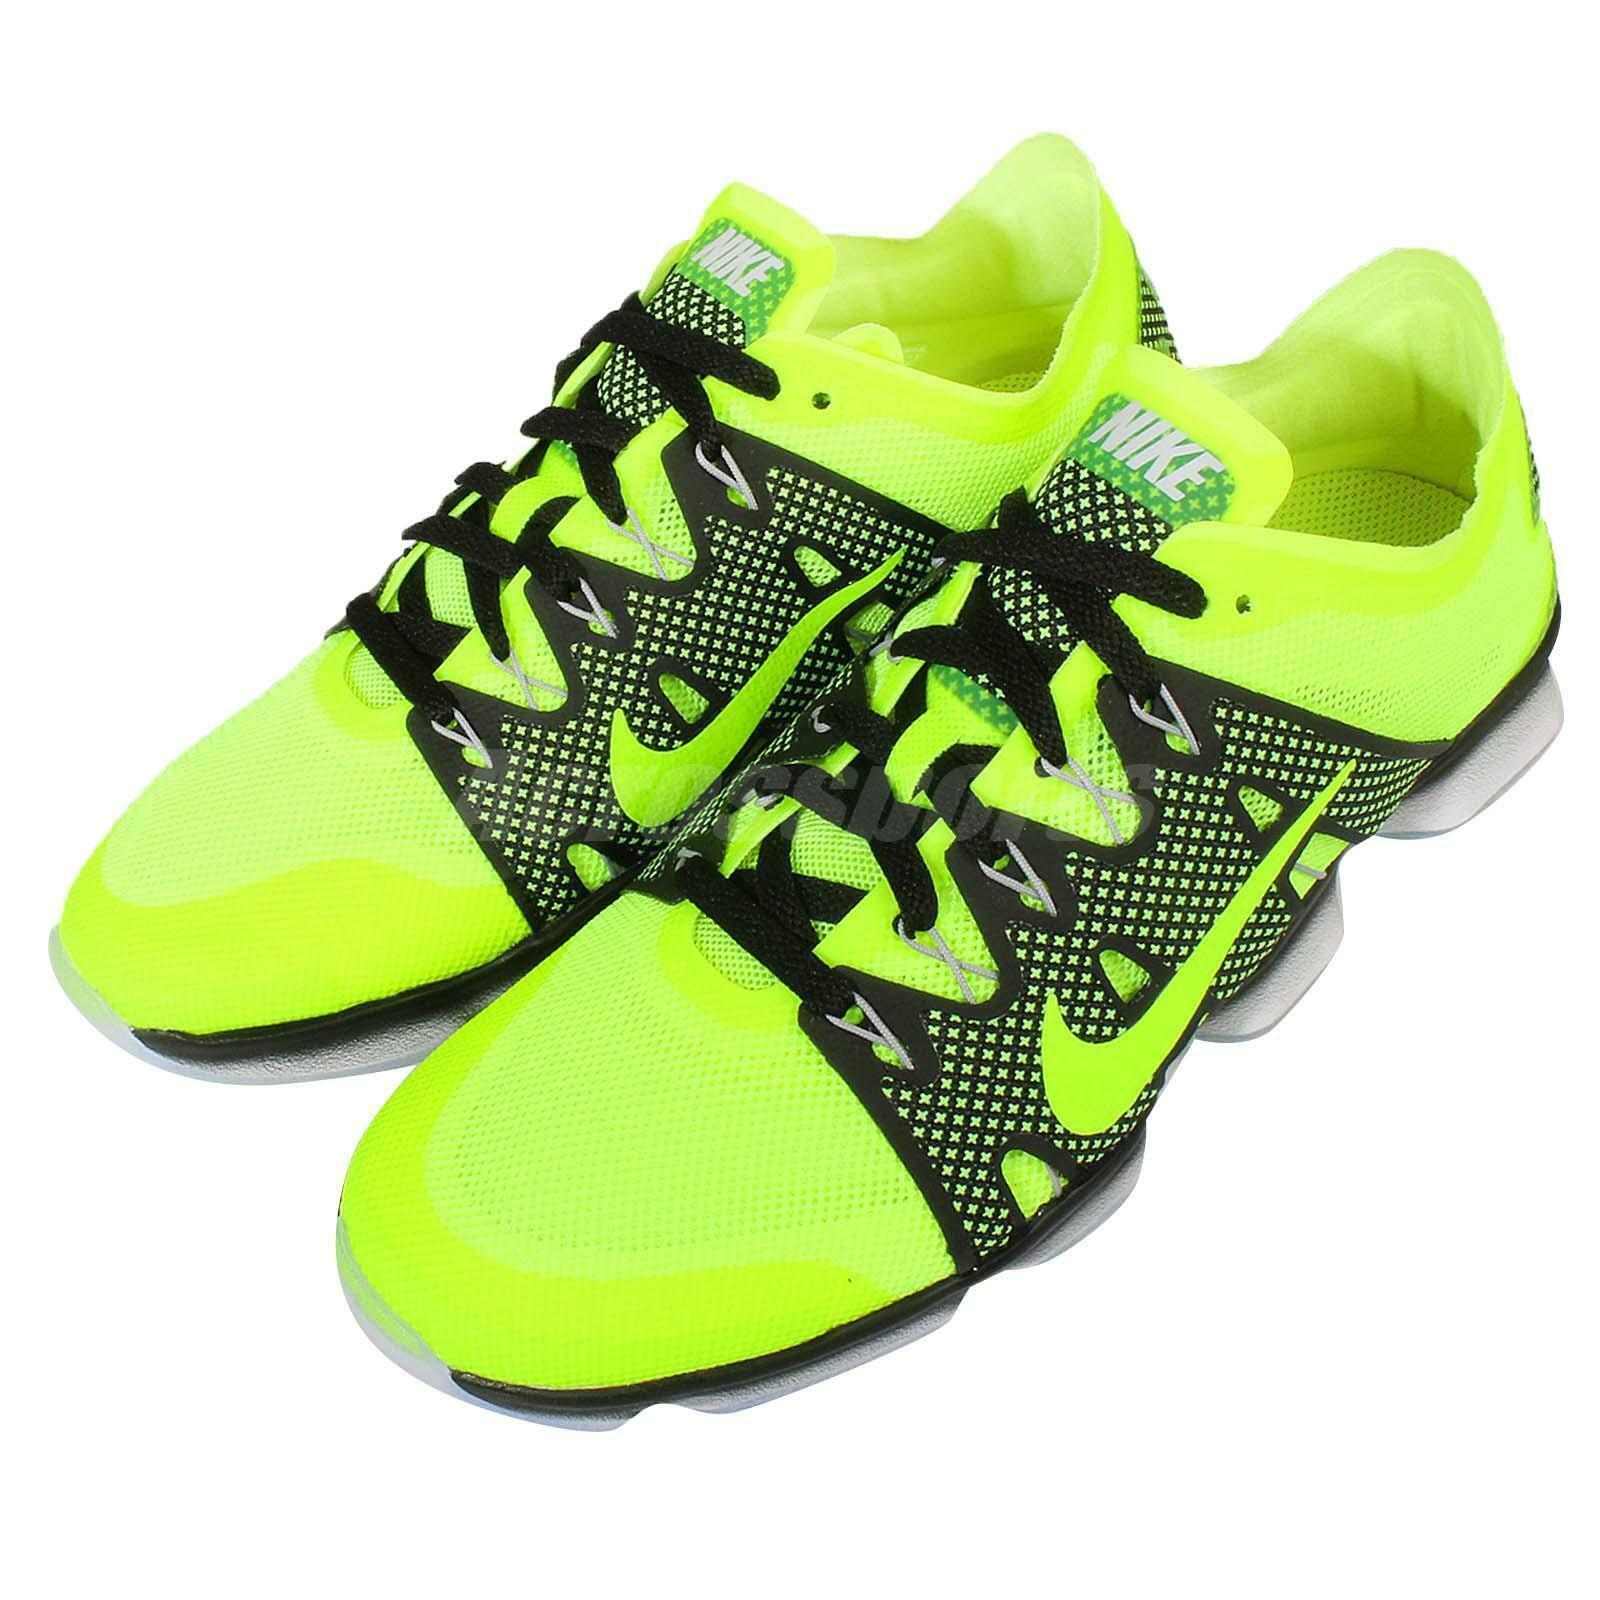 Nike Air Zoom Fit Agility 2 Volt Womens Womens Womens Cross Training shoes 806472-700 sz 6 new 678c2a